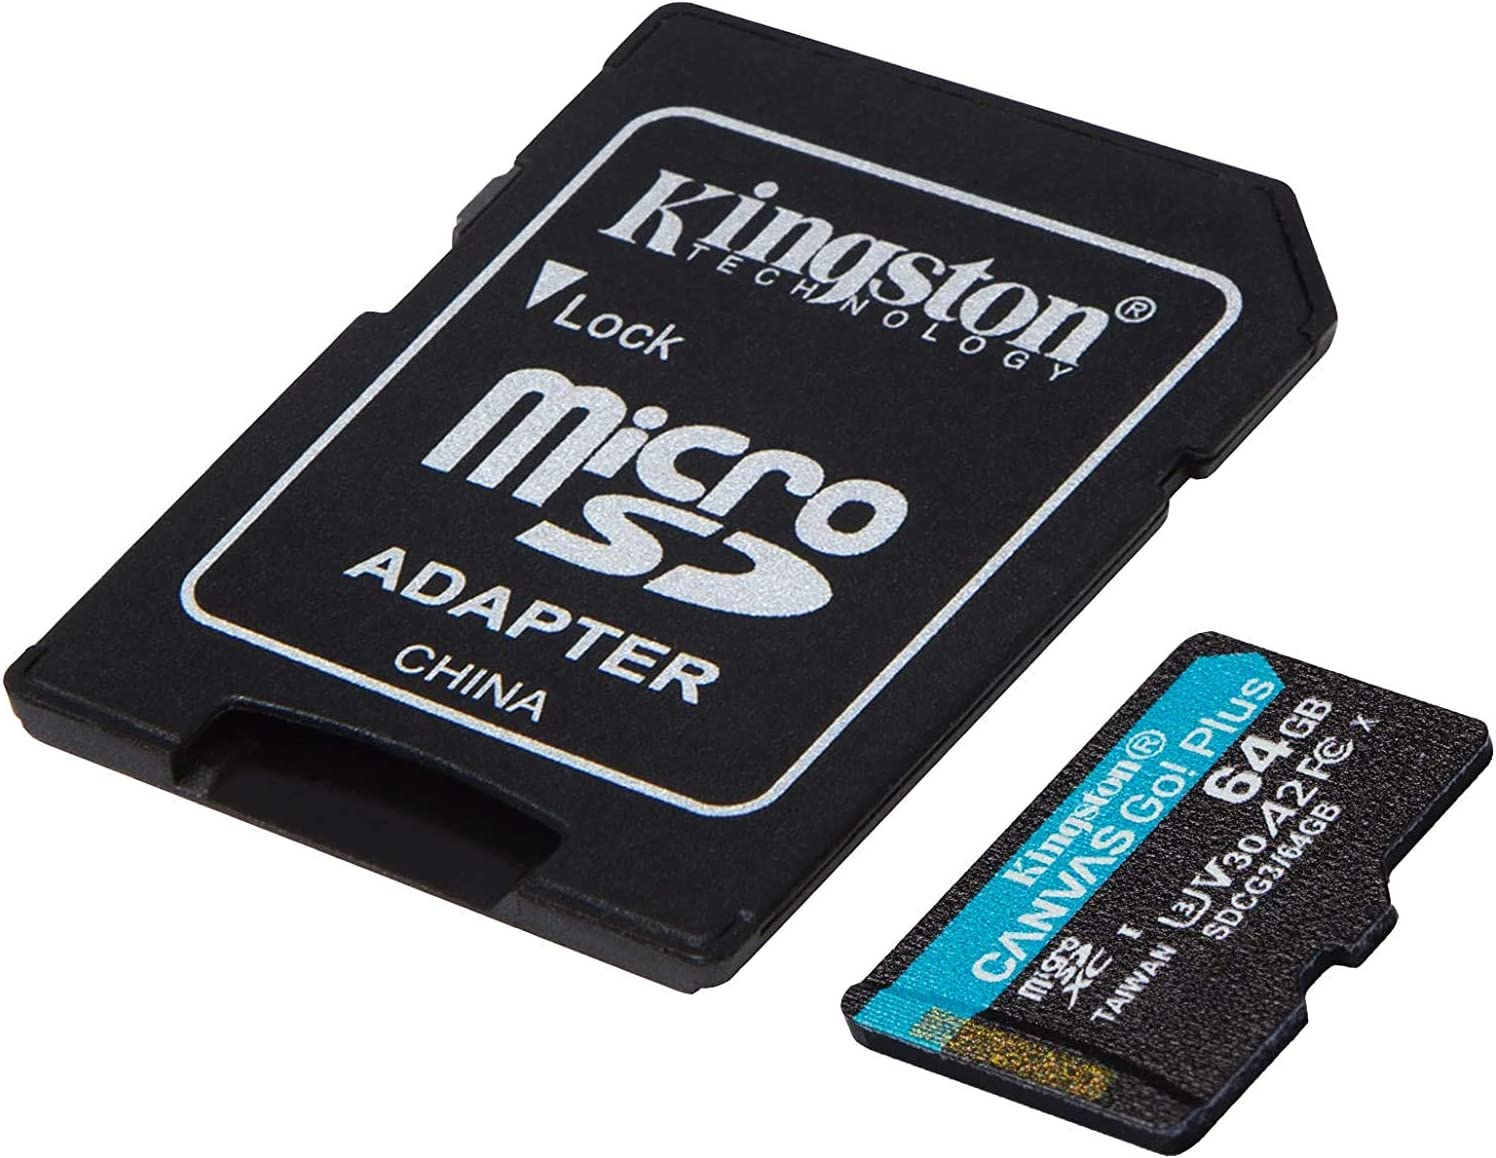 Kingston GO! Plus Works for Acer ICONIA TAB A500 64GB MicroSDXC Canvas Card Verified by SanFlash. (170MBs Works with Kingston)